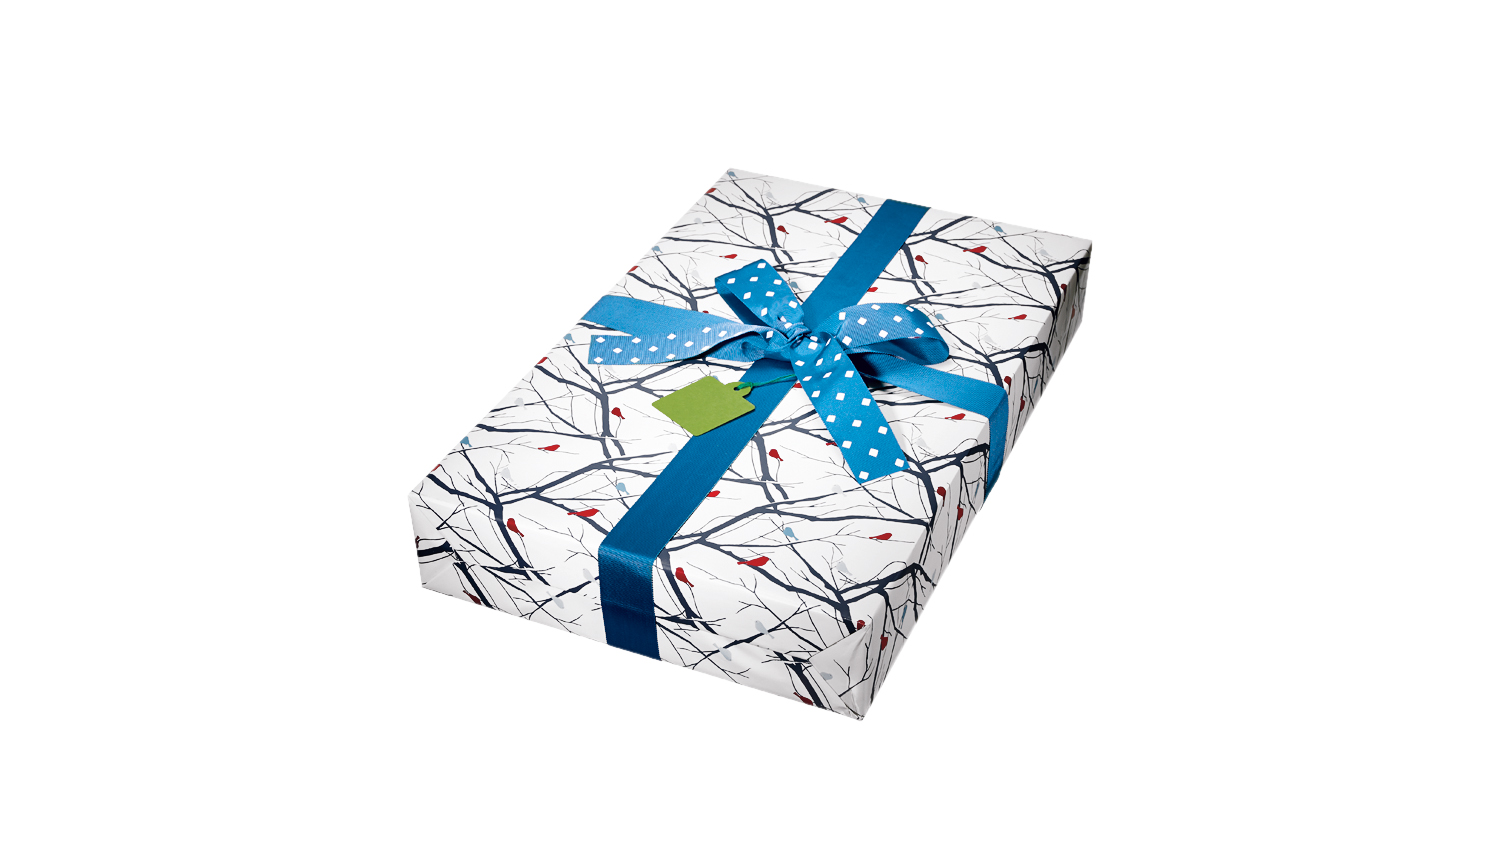 Gift with bird wrapping paper and blue bow